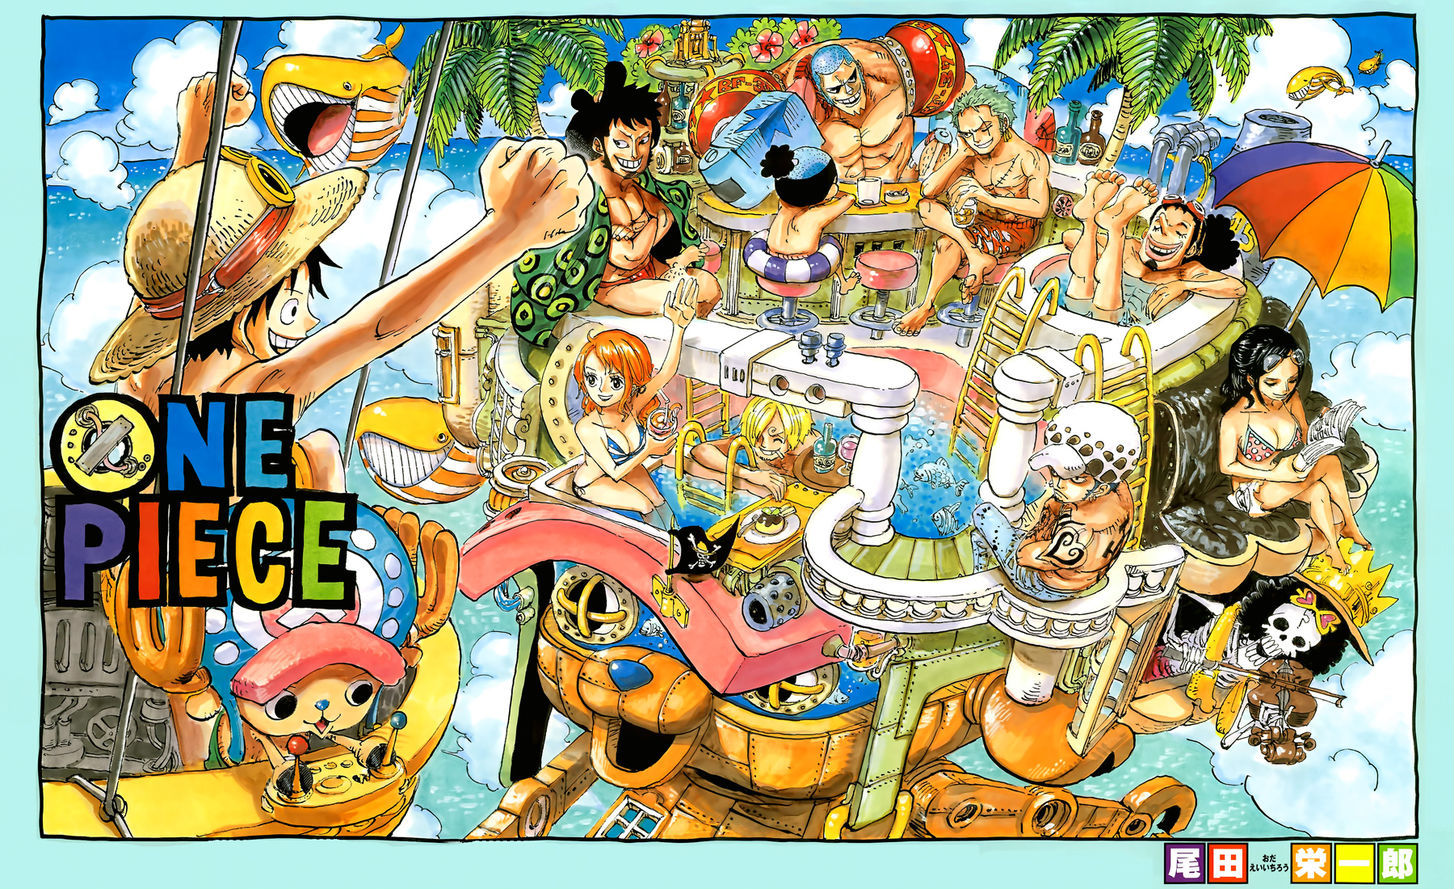 https://im.nineanime.com/comics/pic9/32/96/3066/OnePiece7170621.jpg Page 1